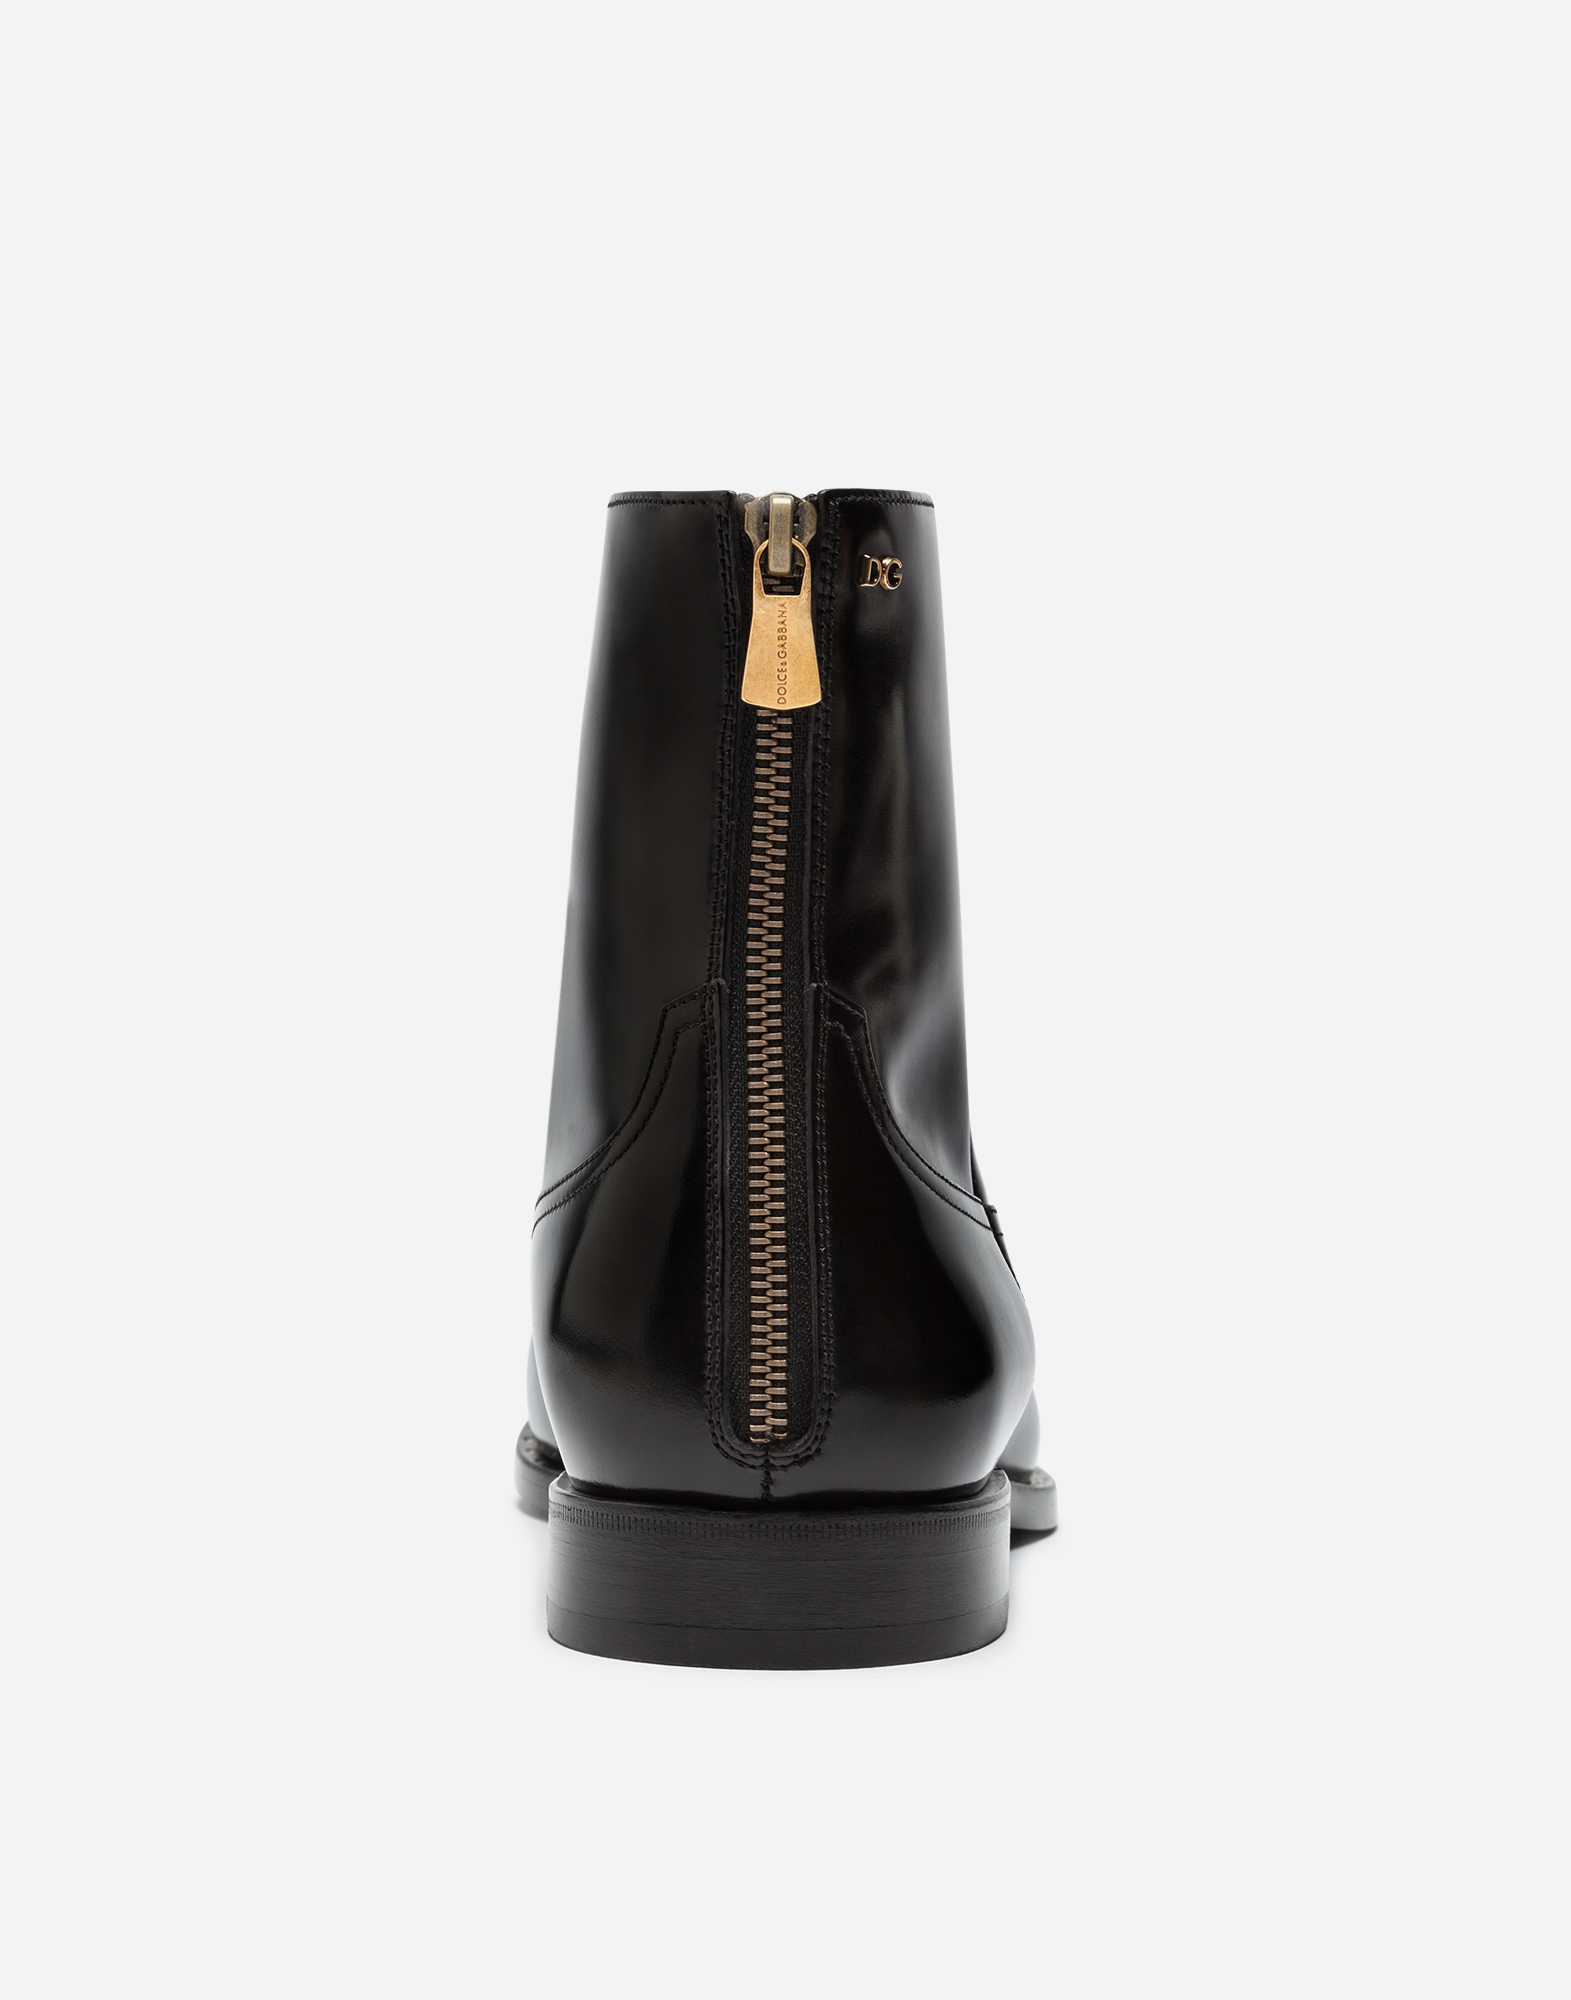 Dolce&Gabbana BRUSHED CALFSKIN ANKLE BOOTS